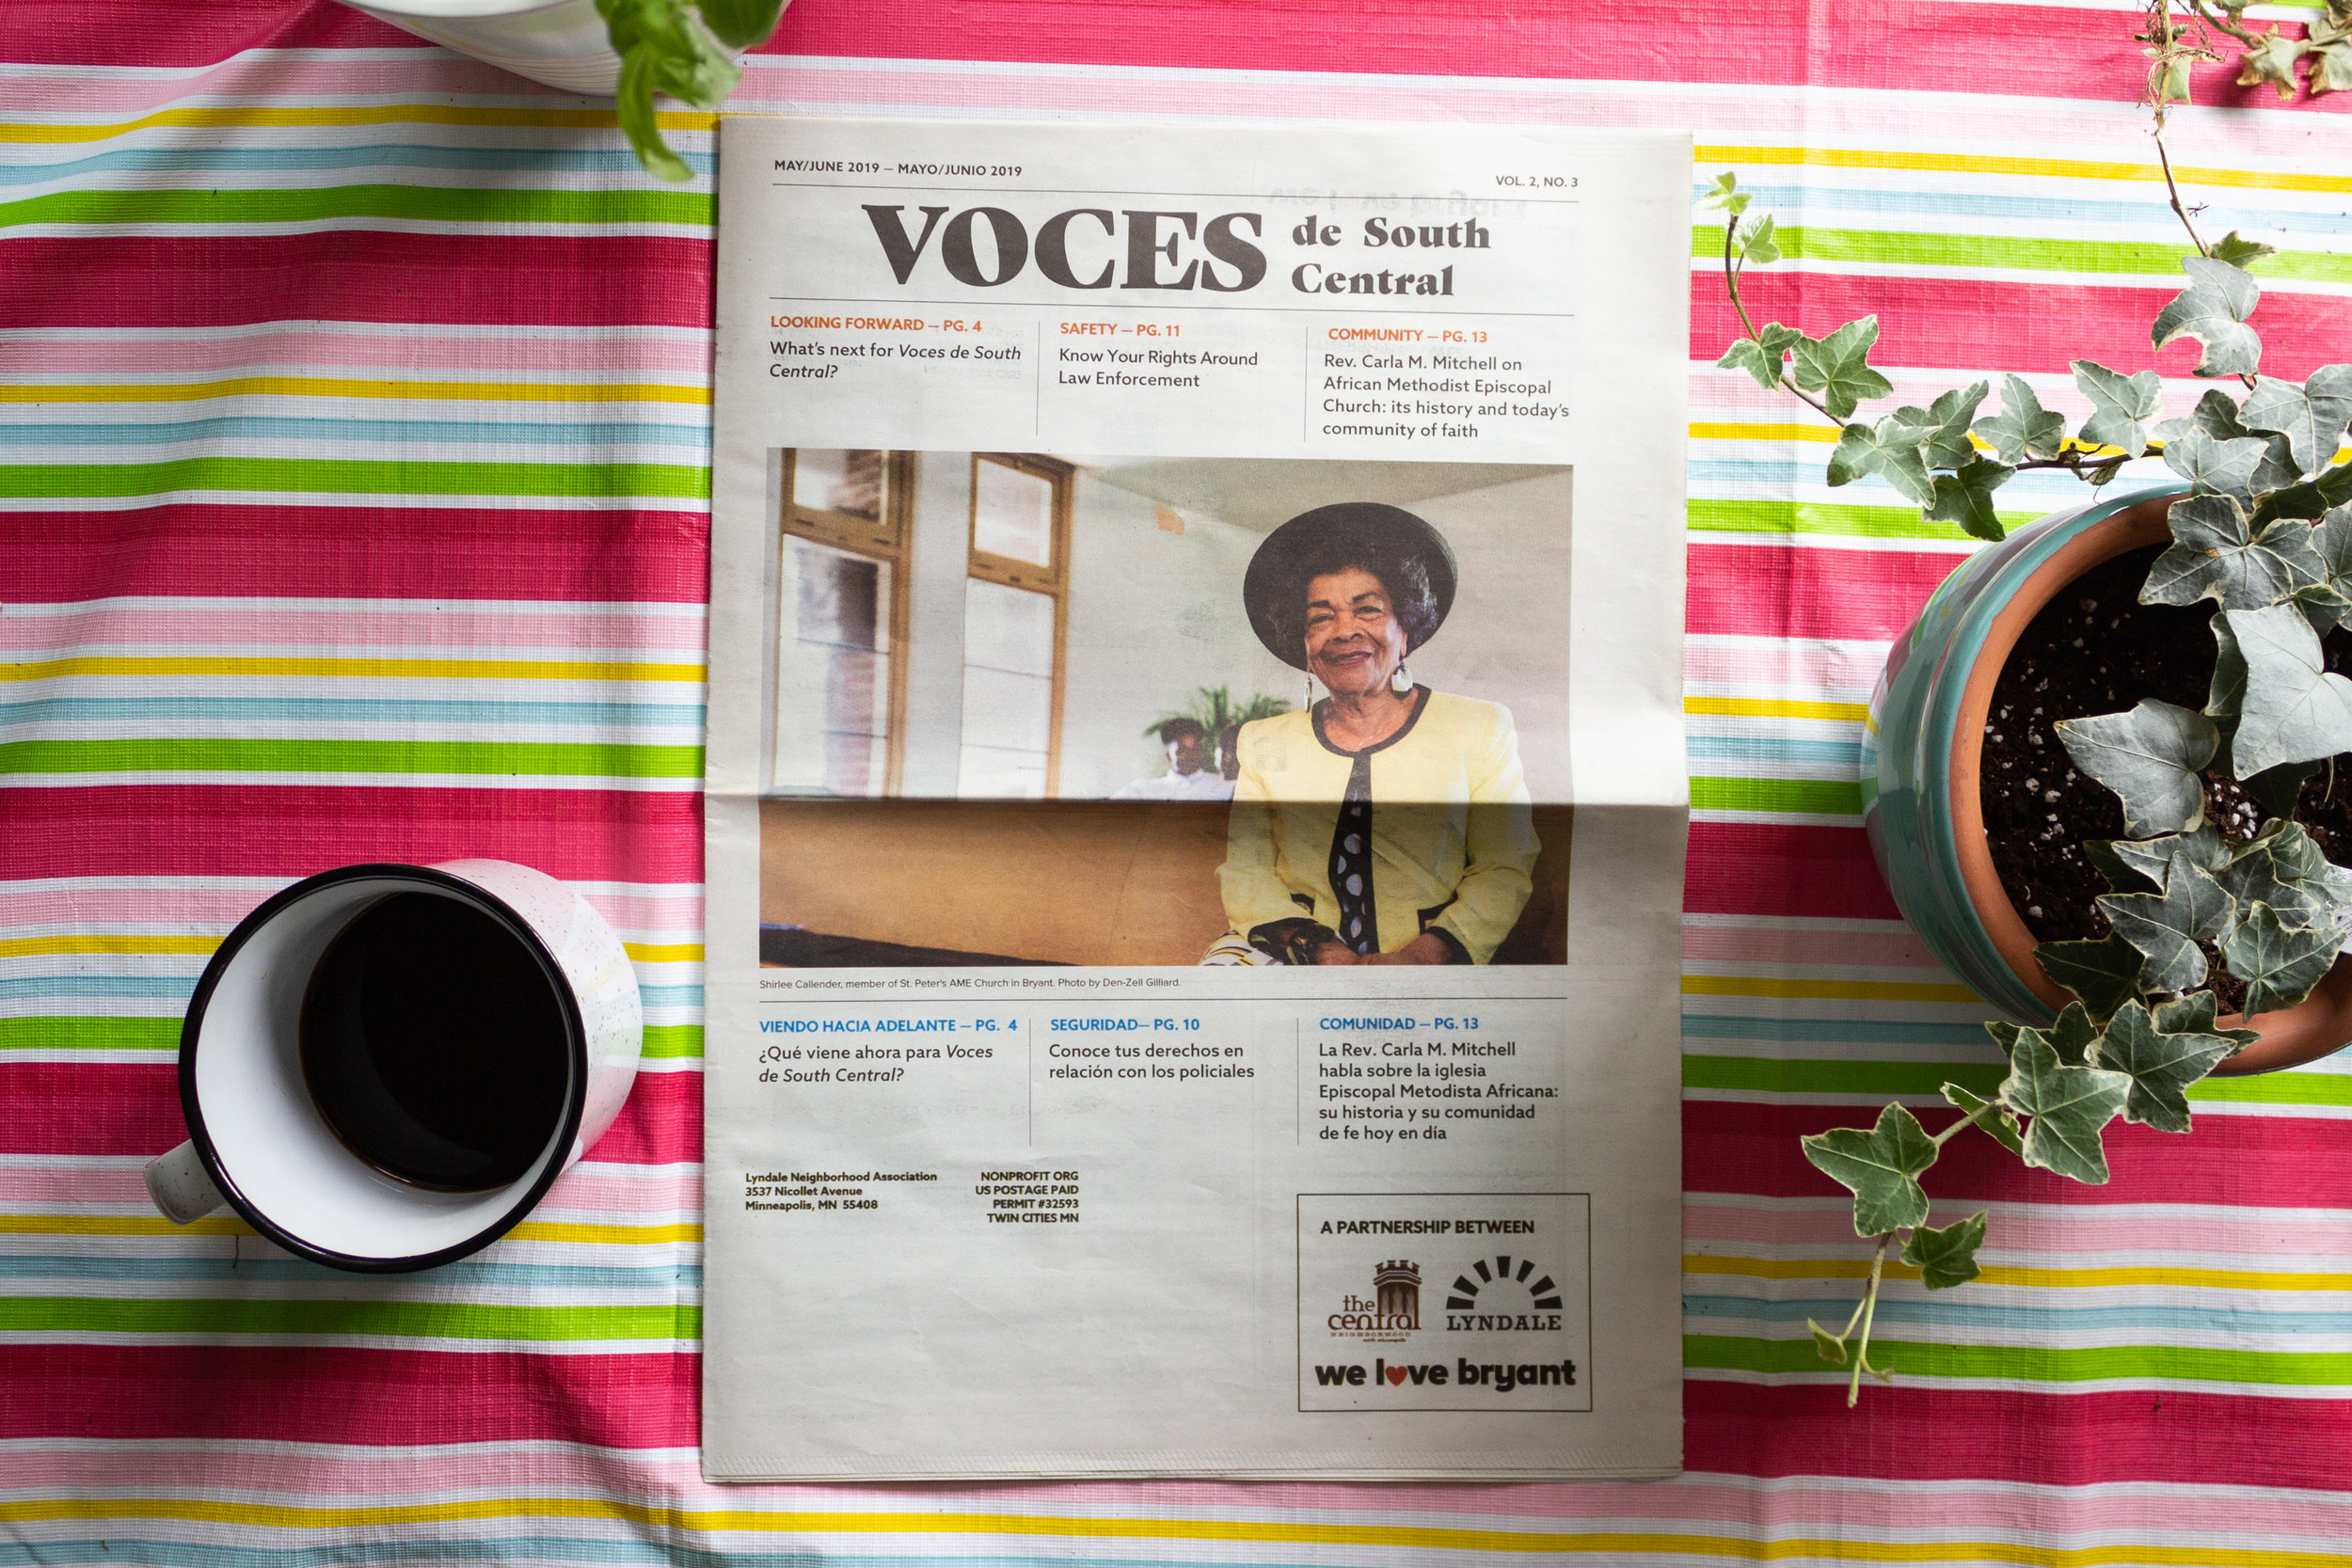 voces_cover-3.jpg